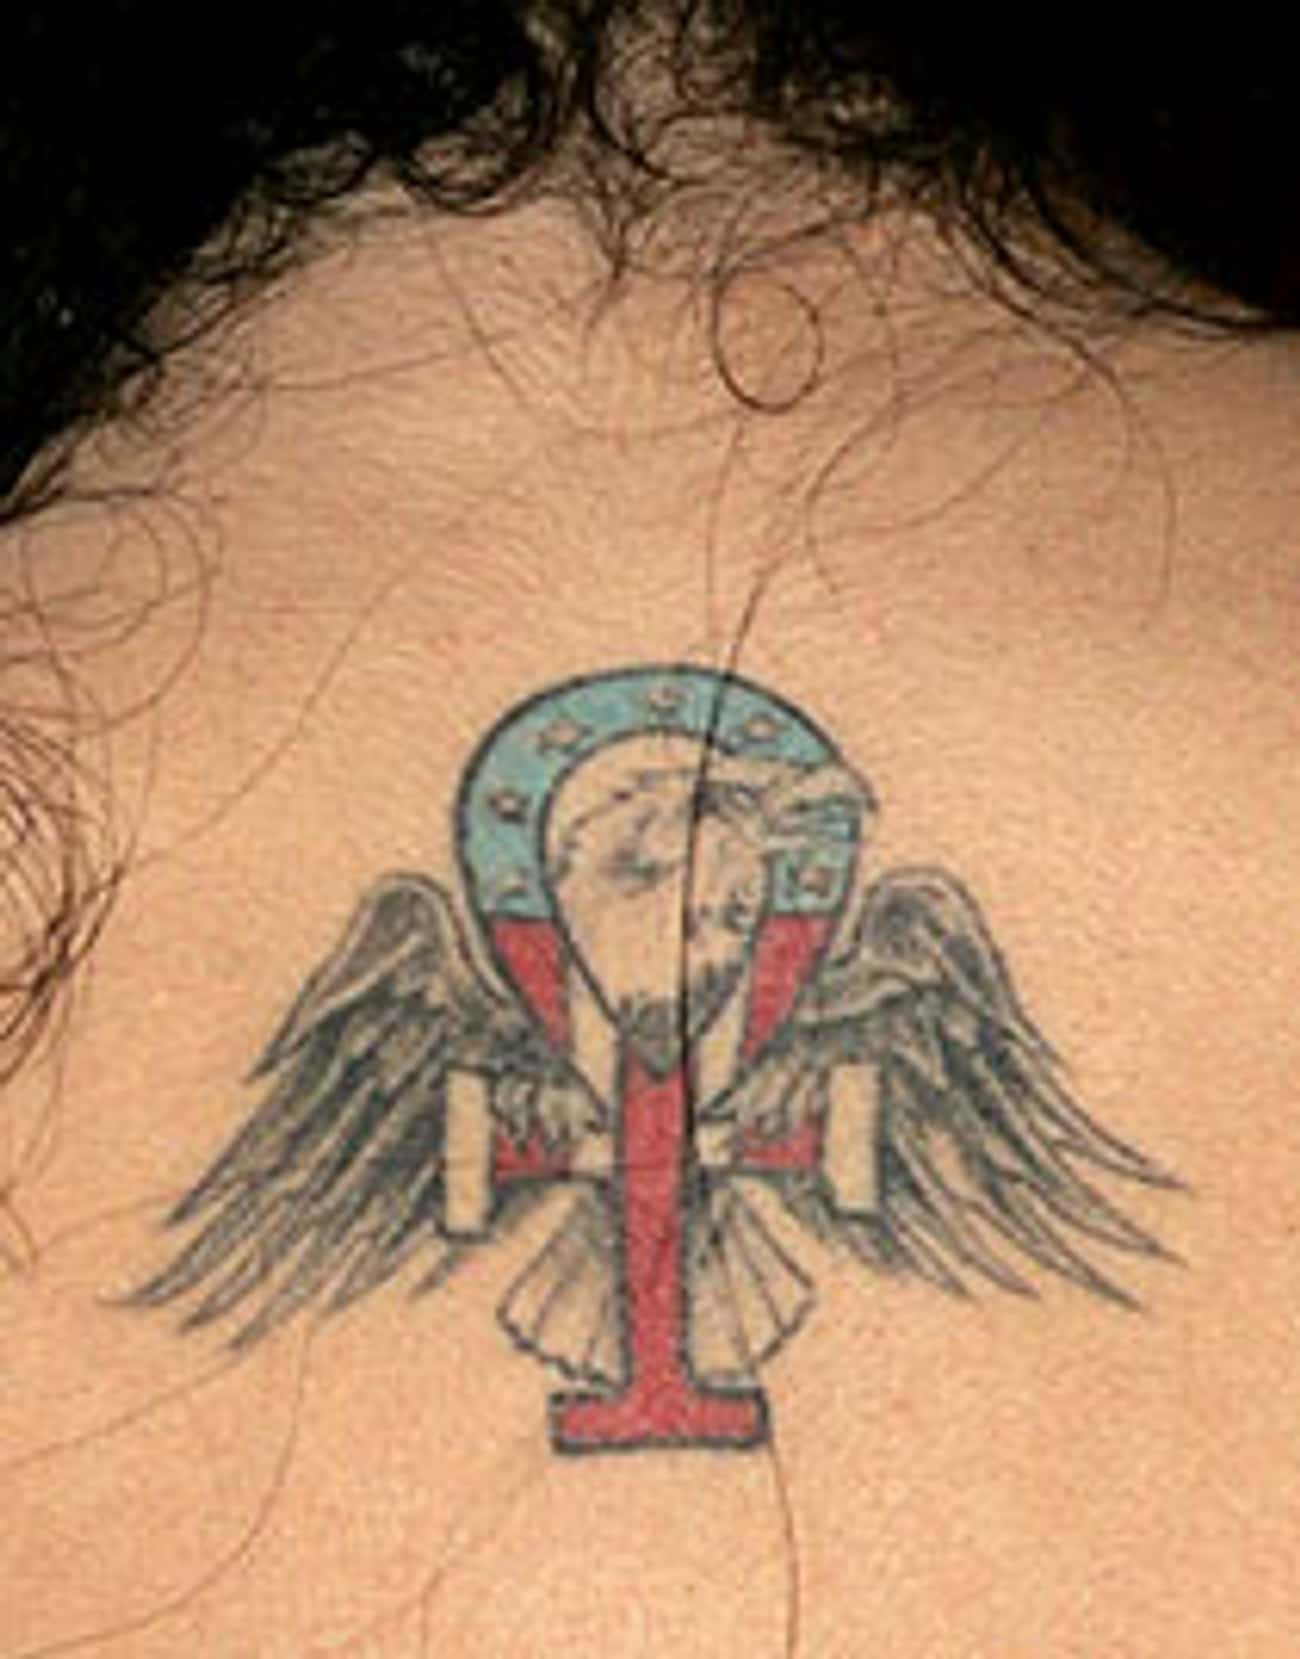 Ankh Eagle is listed (or ranked) 3 on the list Amy Winehouse Tattoos